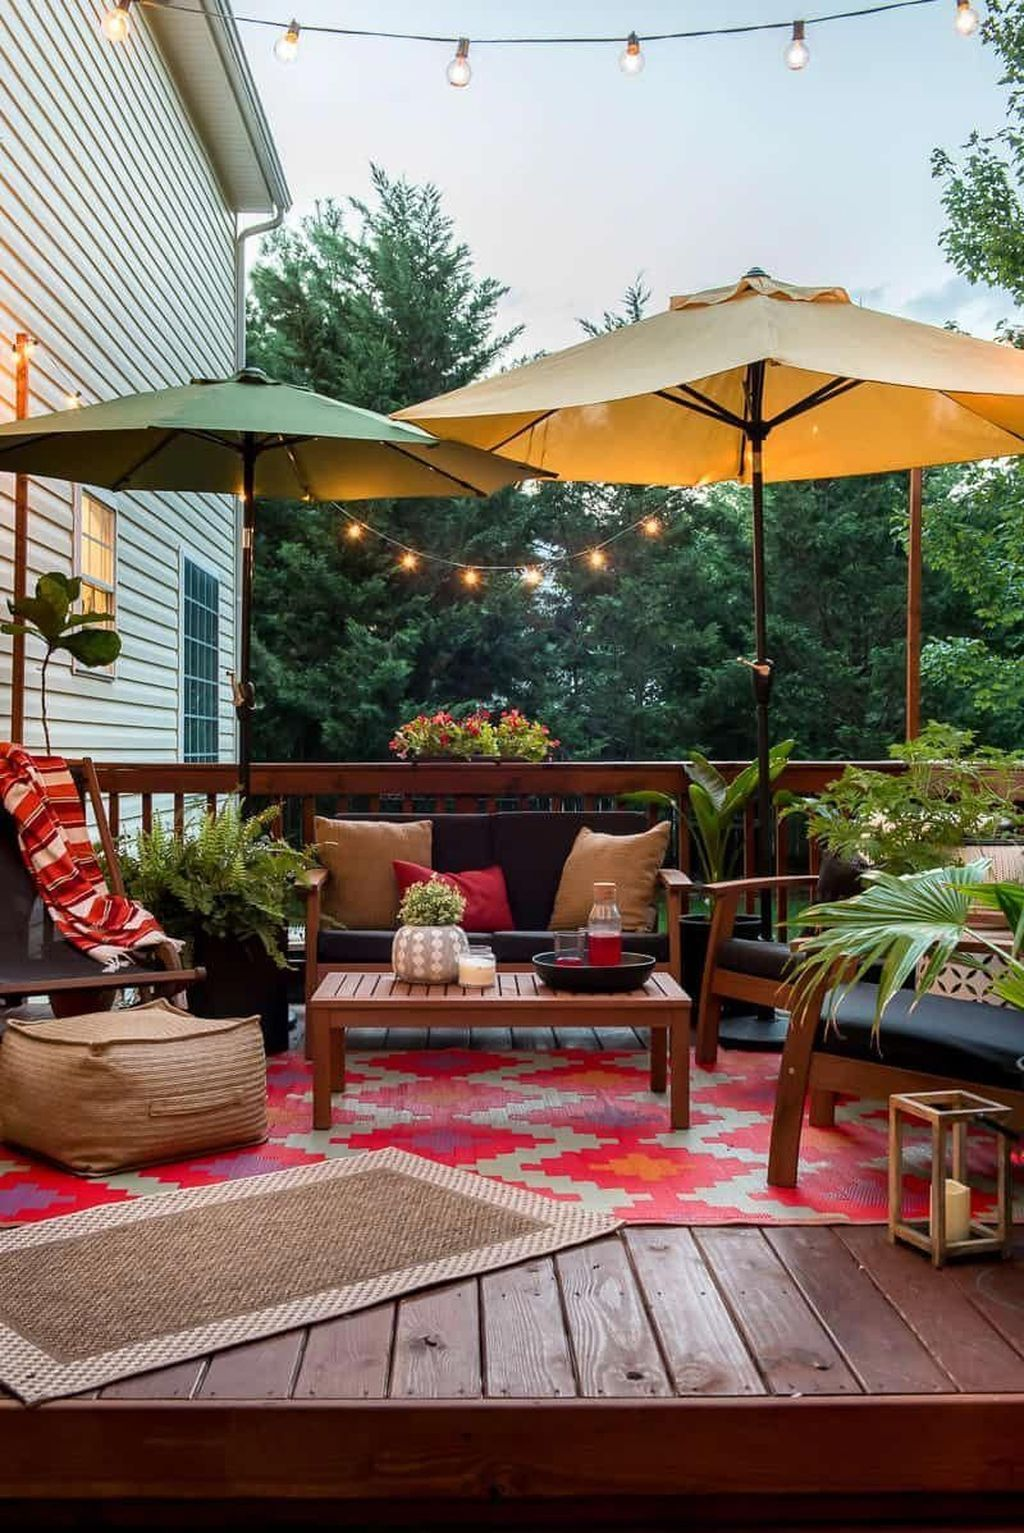 41 Stylish Small Deck And Patio Decorations Ideas To Try Right Now In 2020 Patio Deck Designs Outdoor Deck Decorating Outdoor Patio Decor